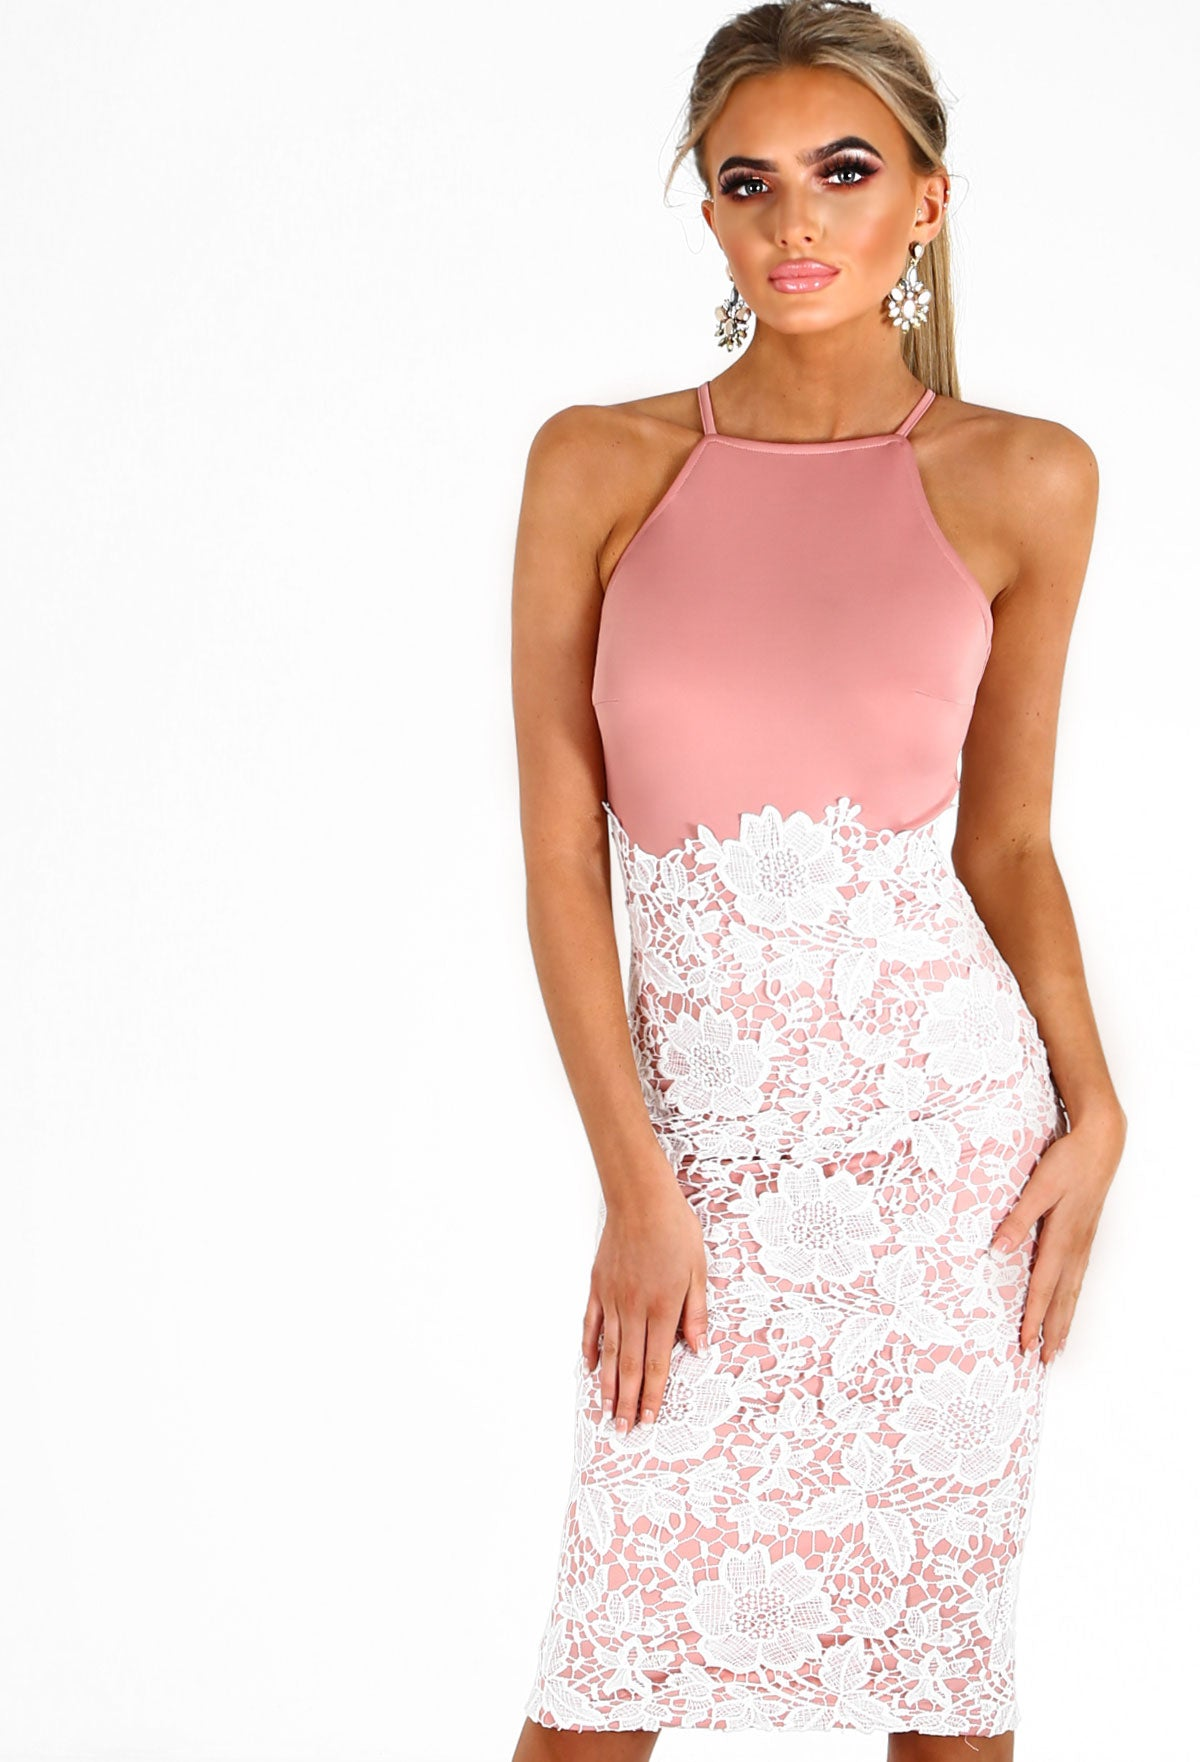 013be40c94 Valentina Pink And White Lace Midi Dress – Pink Boutique UK